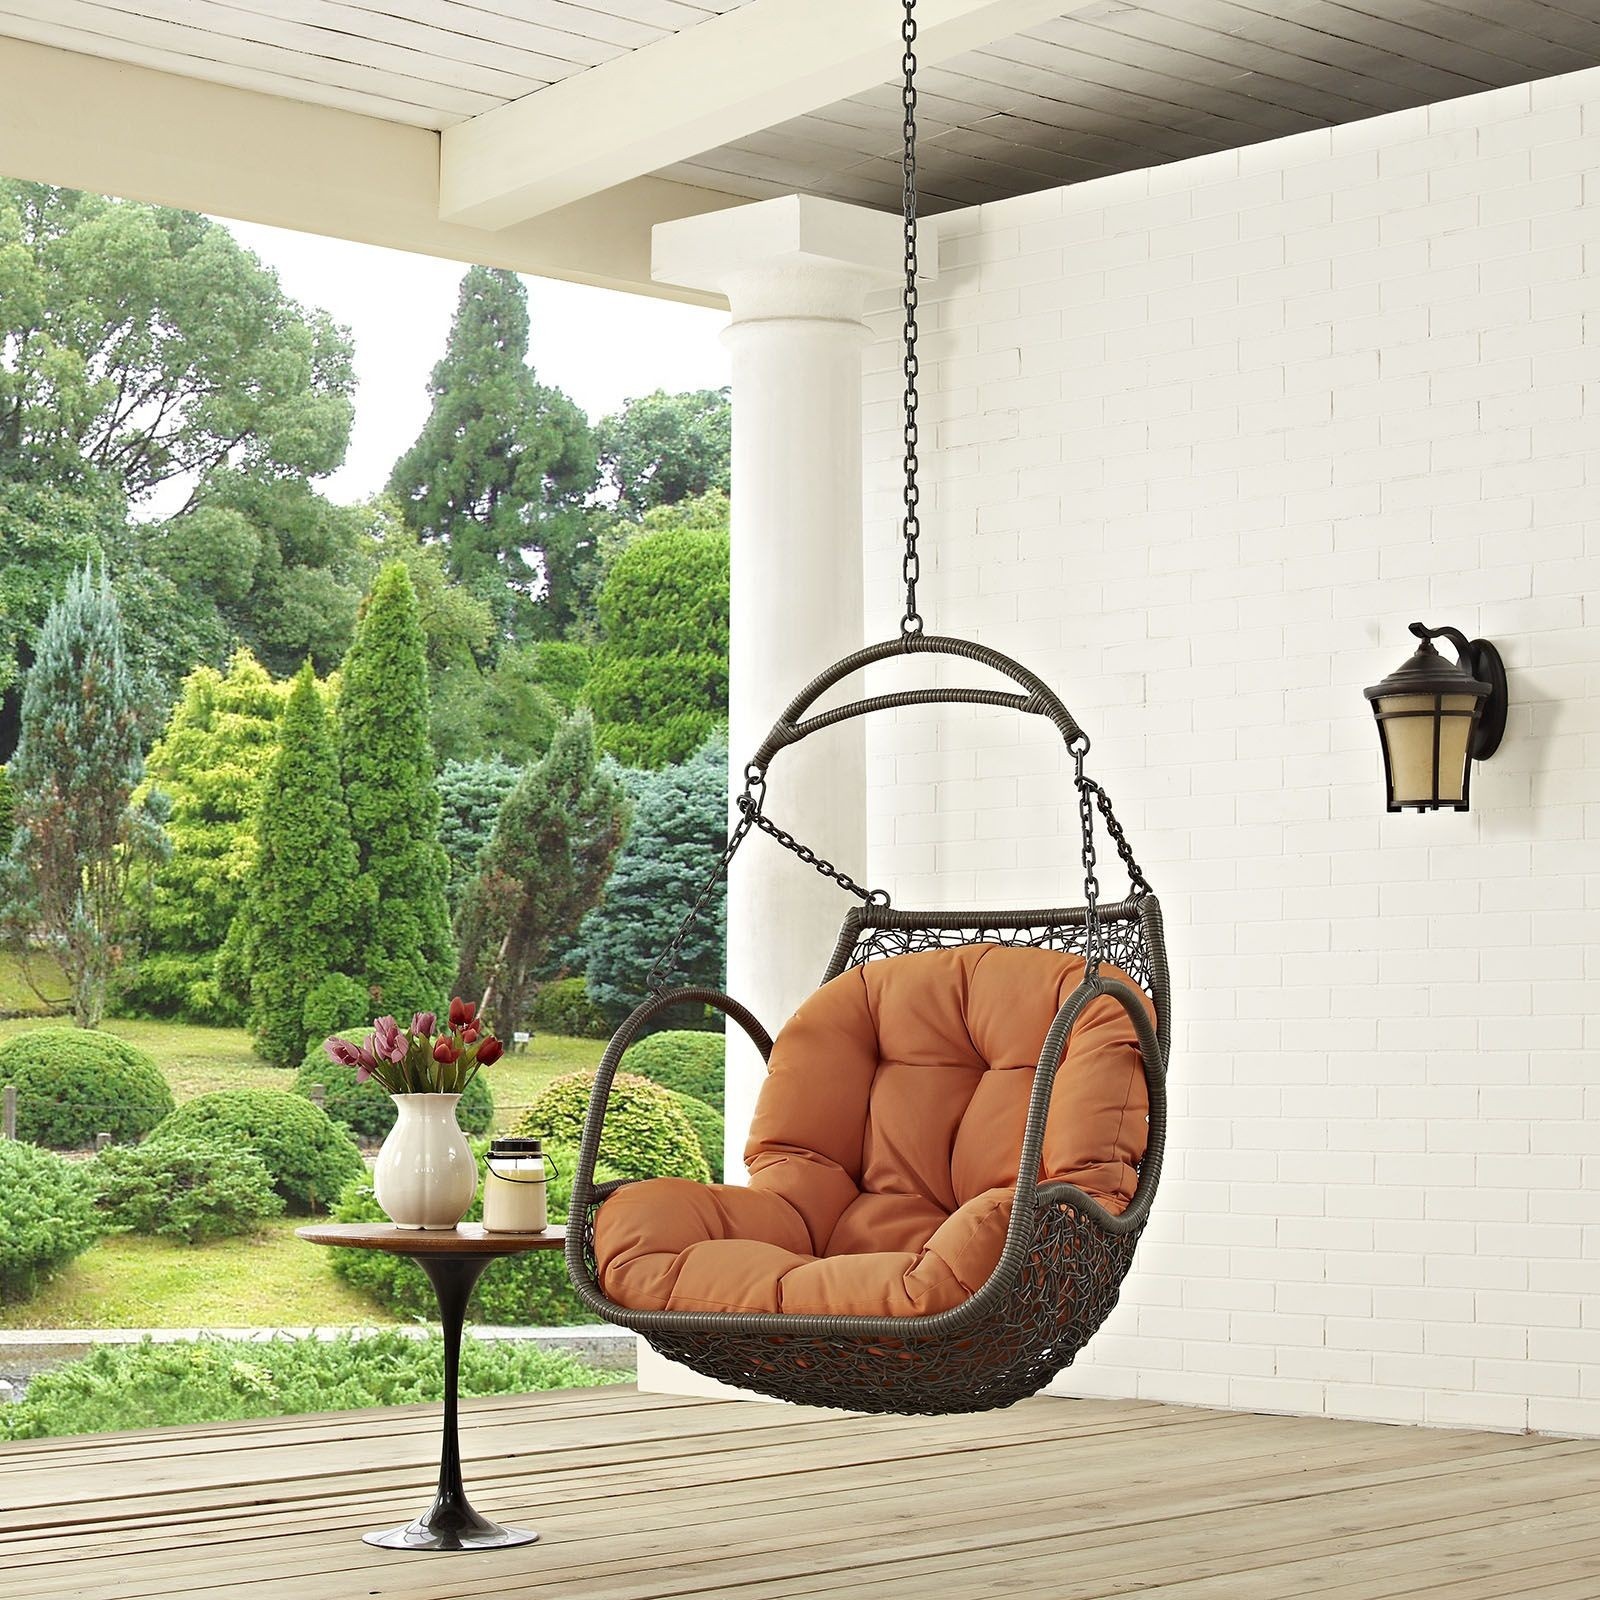 outdoor swing chair with stand old fashioned lawn chairs arbor orange patio without eei